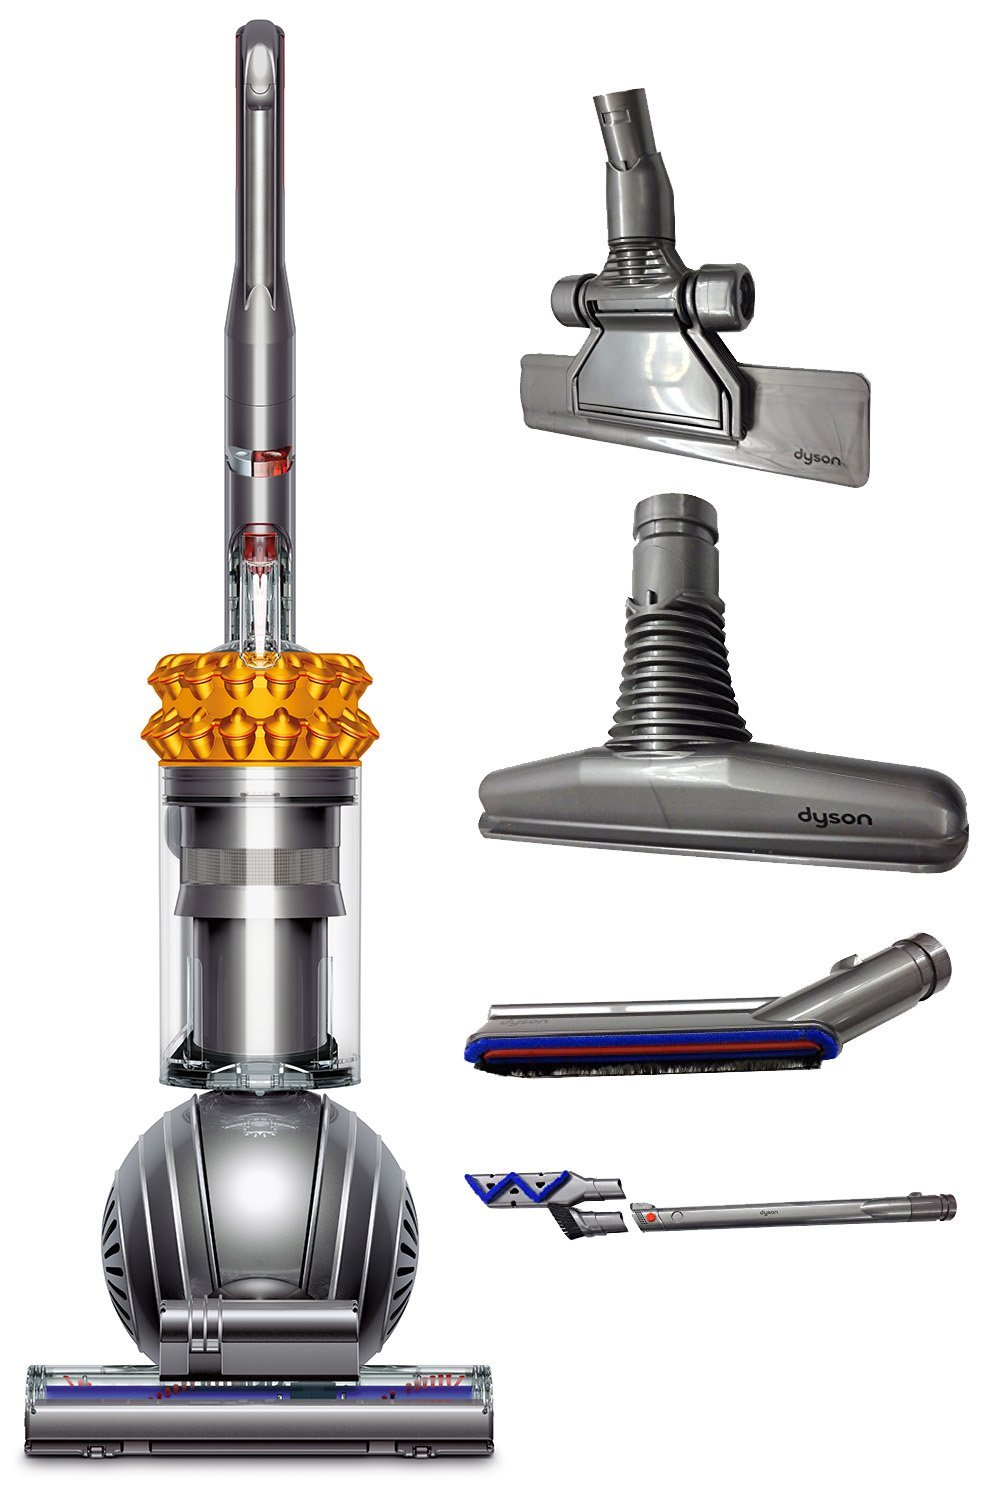 dyson cinetic big ball multi floor upright vacuum cleaner vacuum cleaners. Black Bedroom Furniture Sets. Home Design Ideas